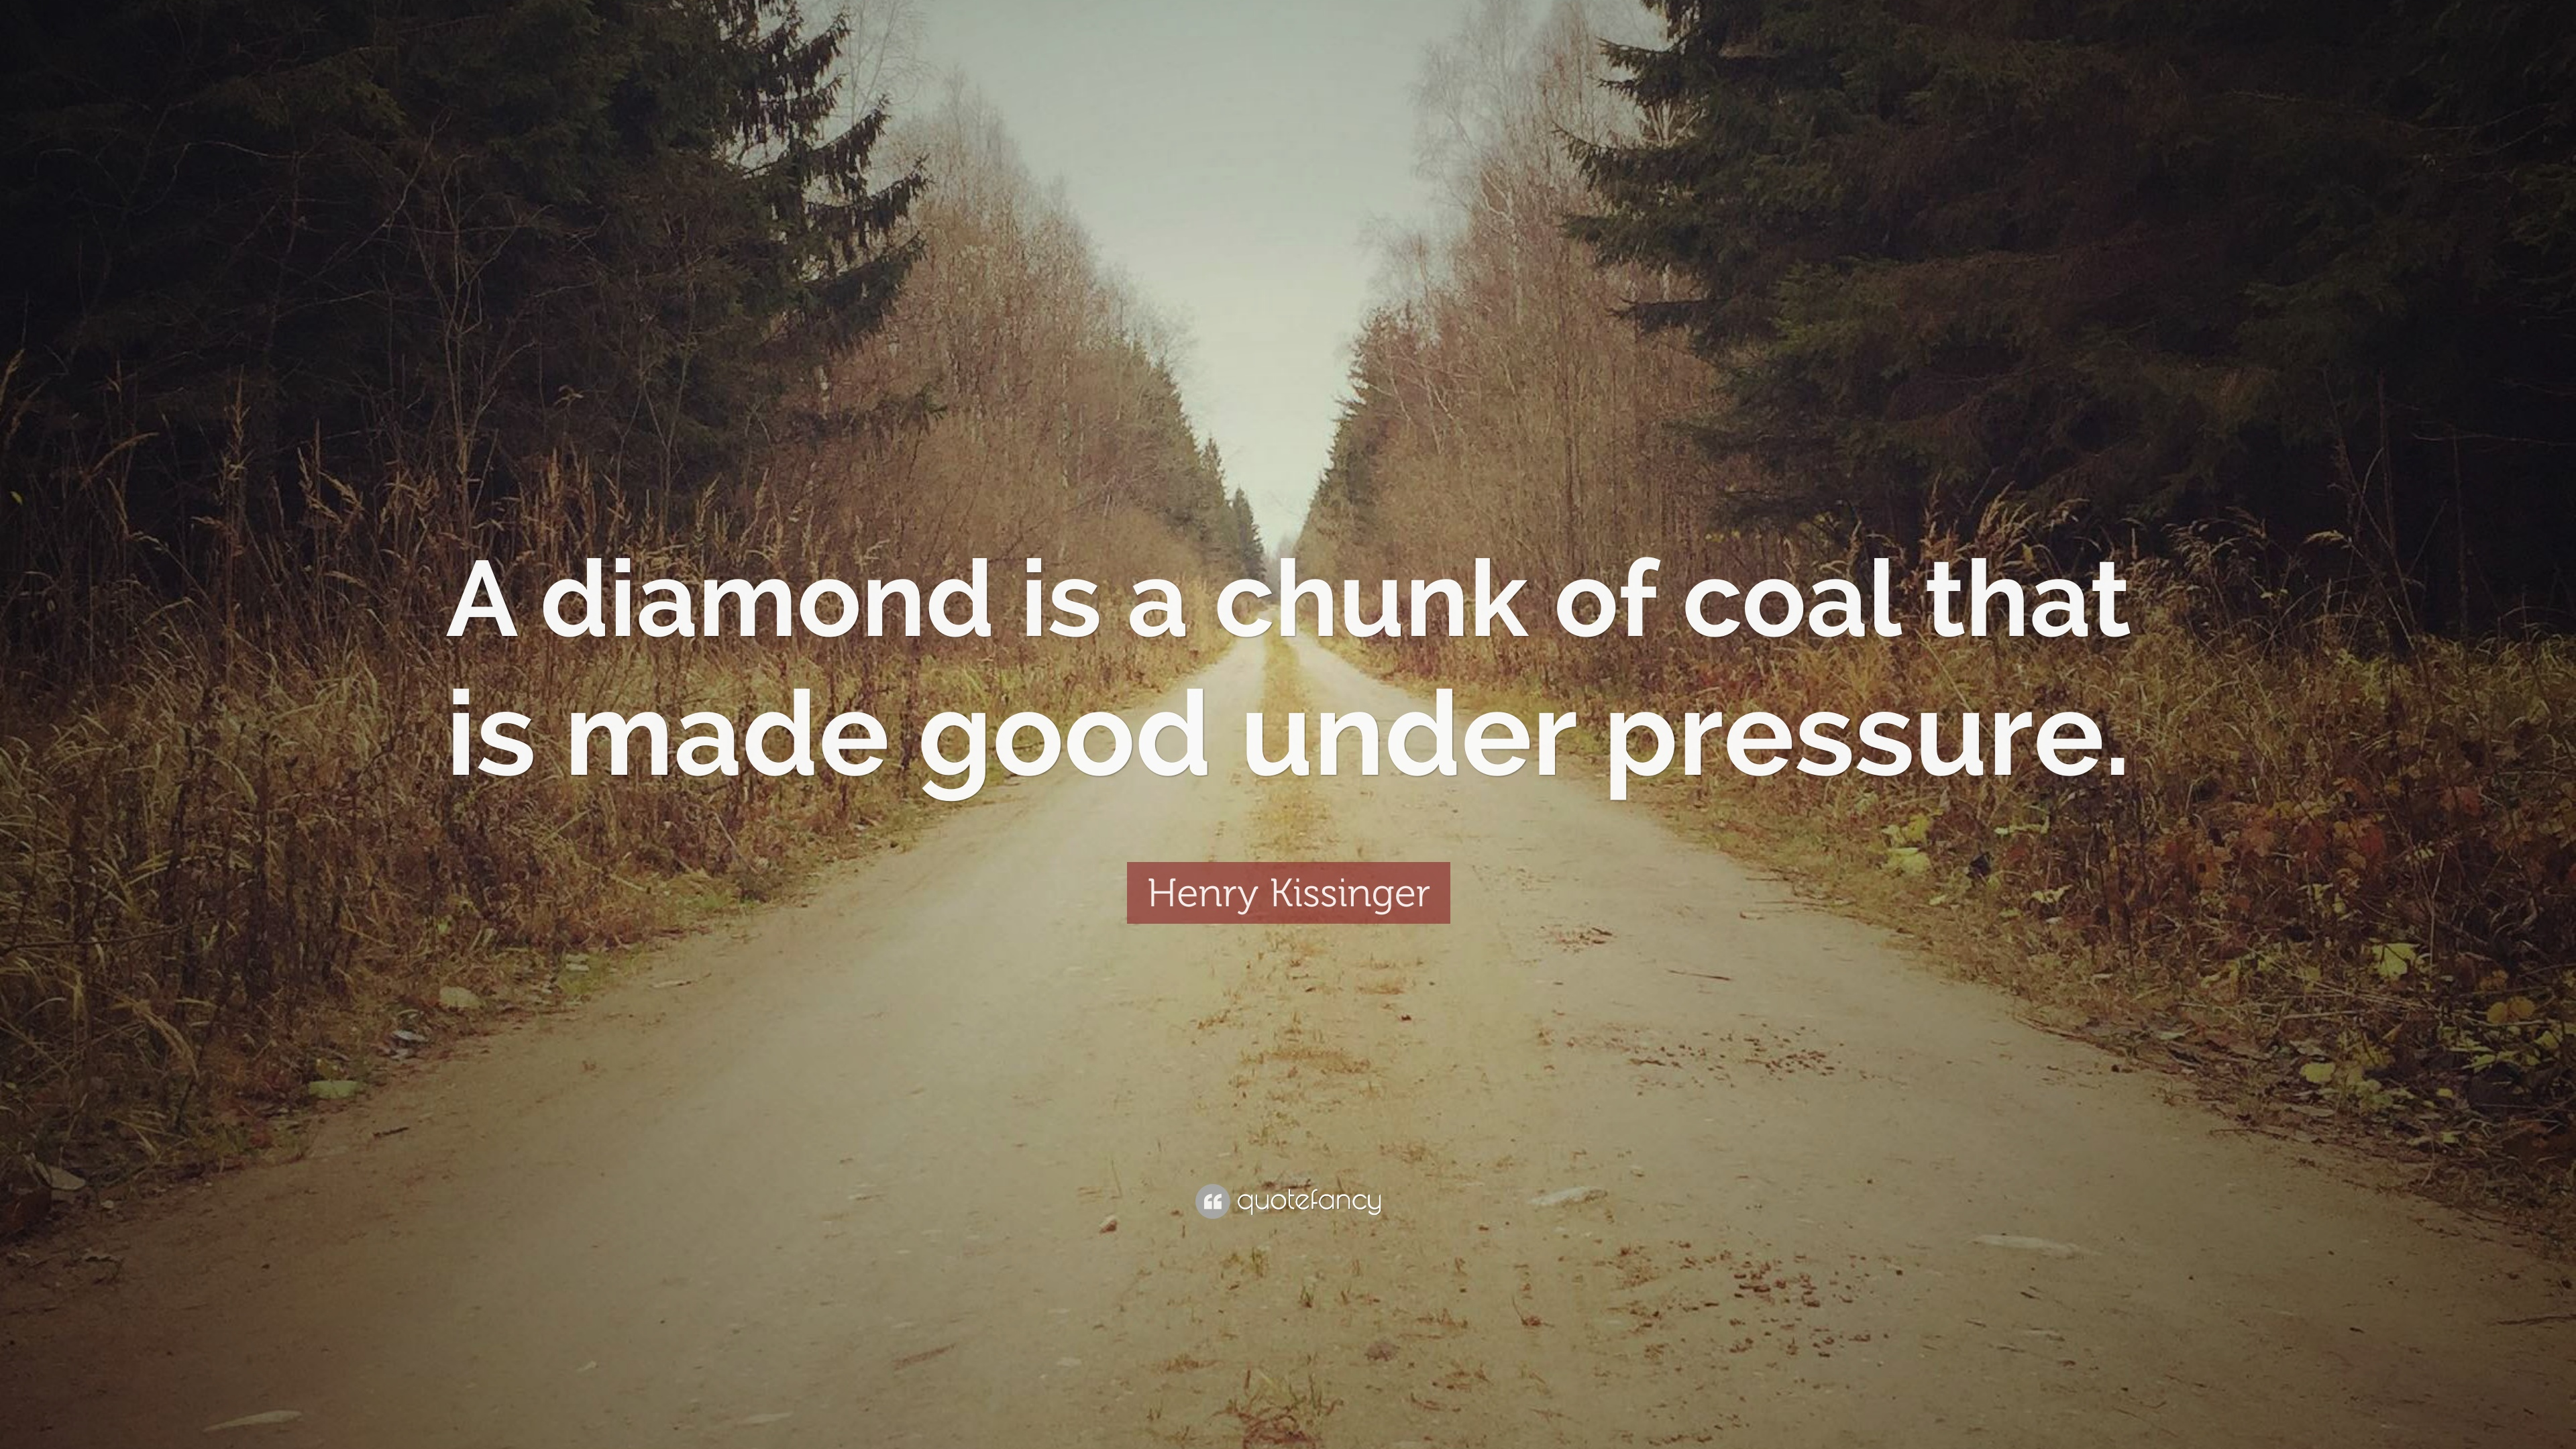 diamond howarediamondsformedfromcoal from coal are how formed diamonds